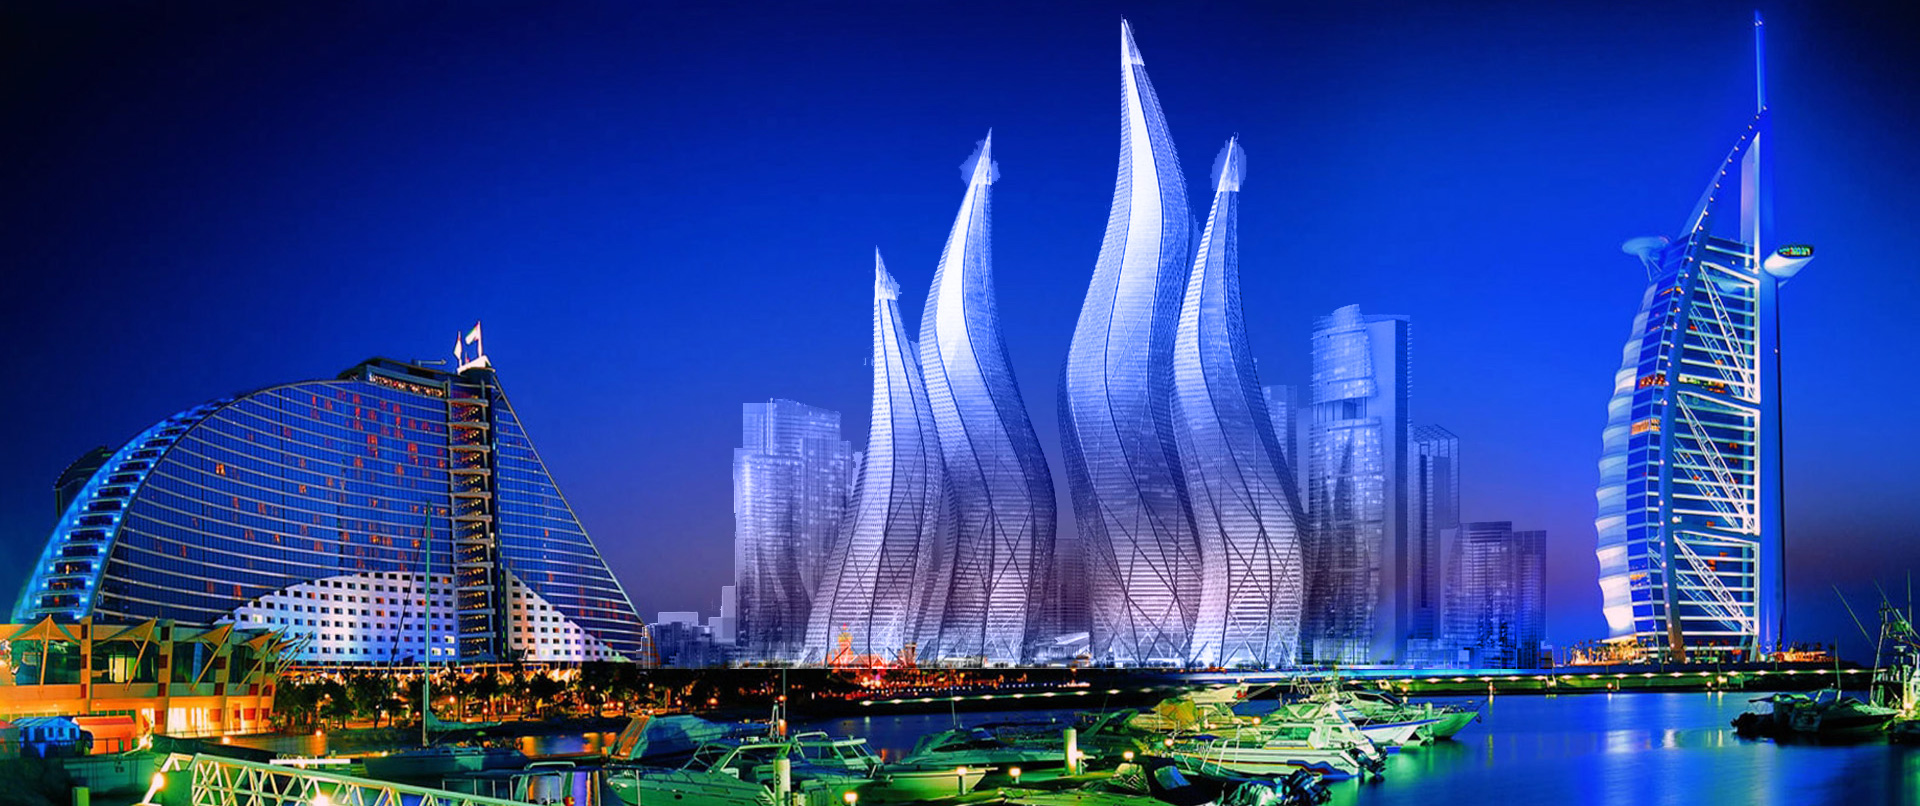 Dubai Travel Packages From Delhi Group Tours In Dubai From India Delhi Travel Agent Dubai